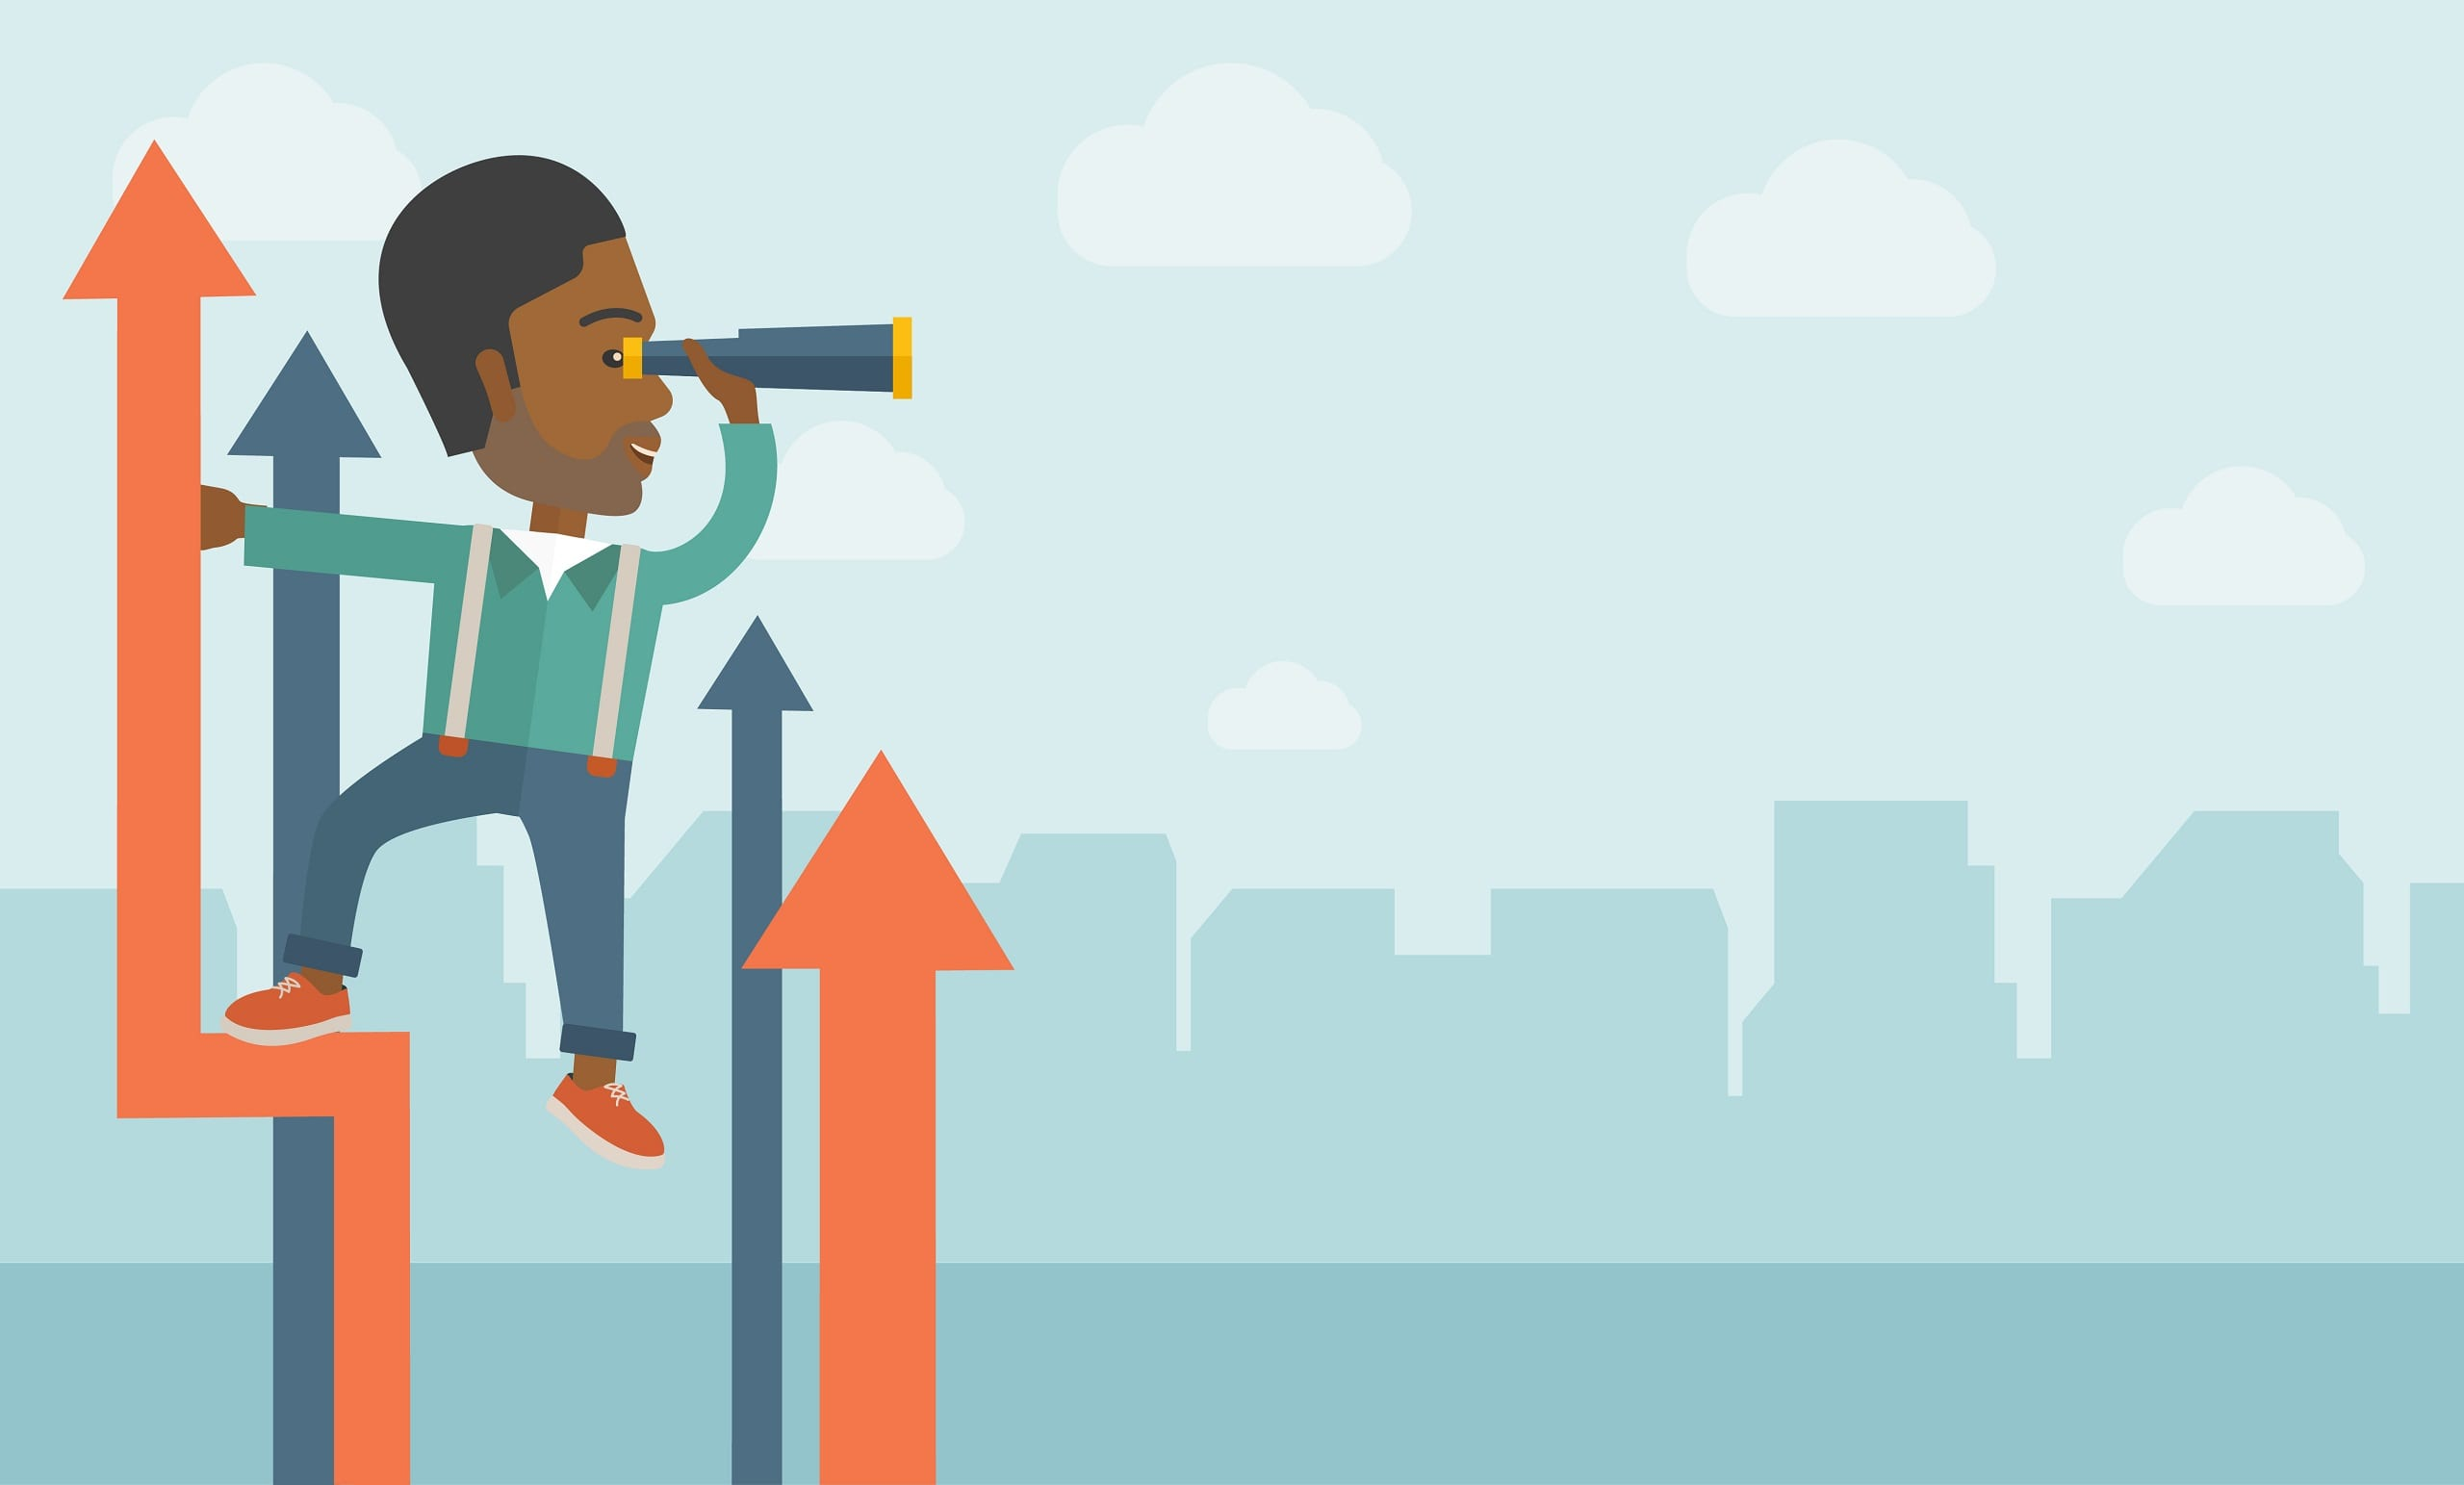 A successful African American businessman stand on top of graph arrow using his telescope looking how high he is.